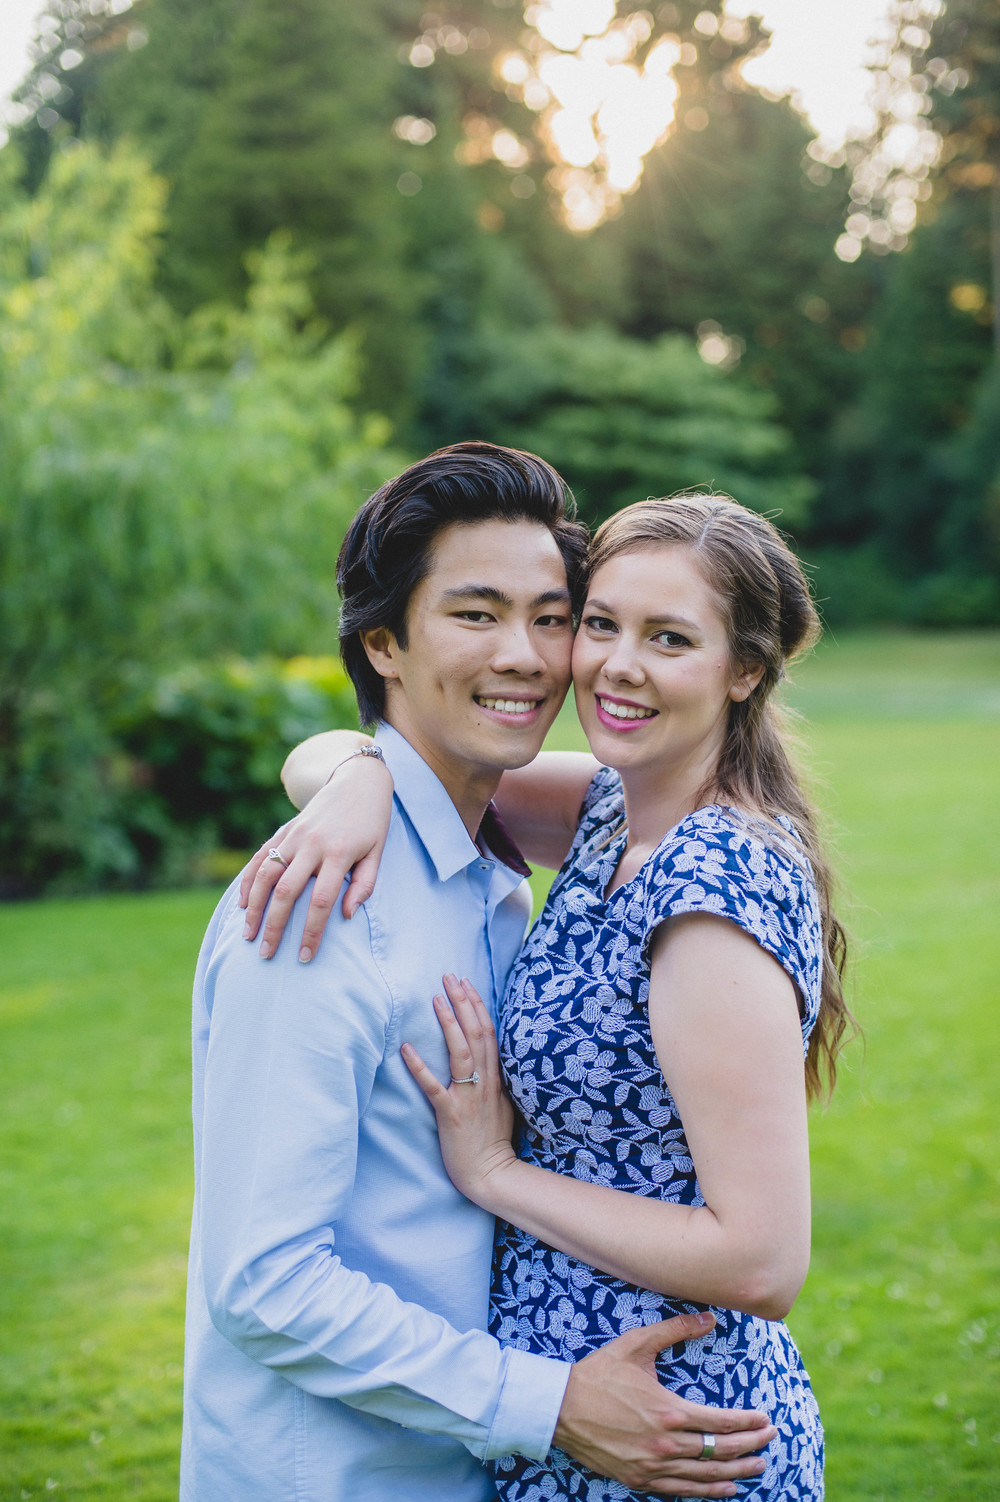 Vancouver wedding photographer edward lai photography-8.jpg